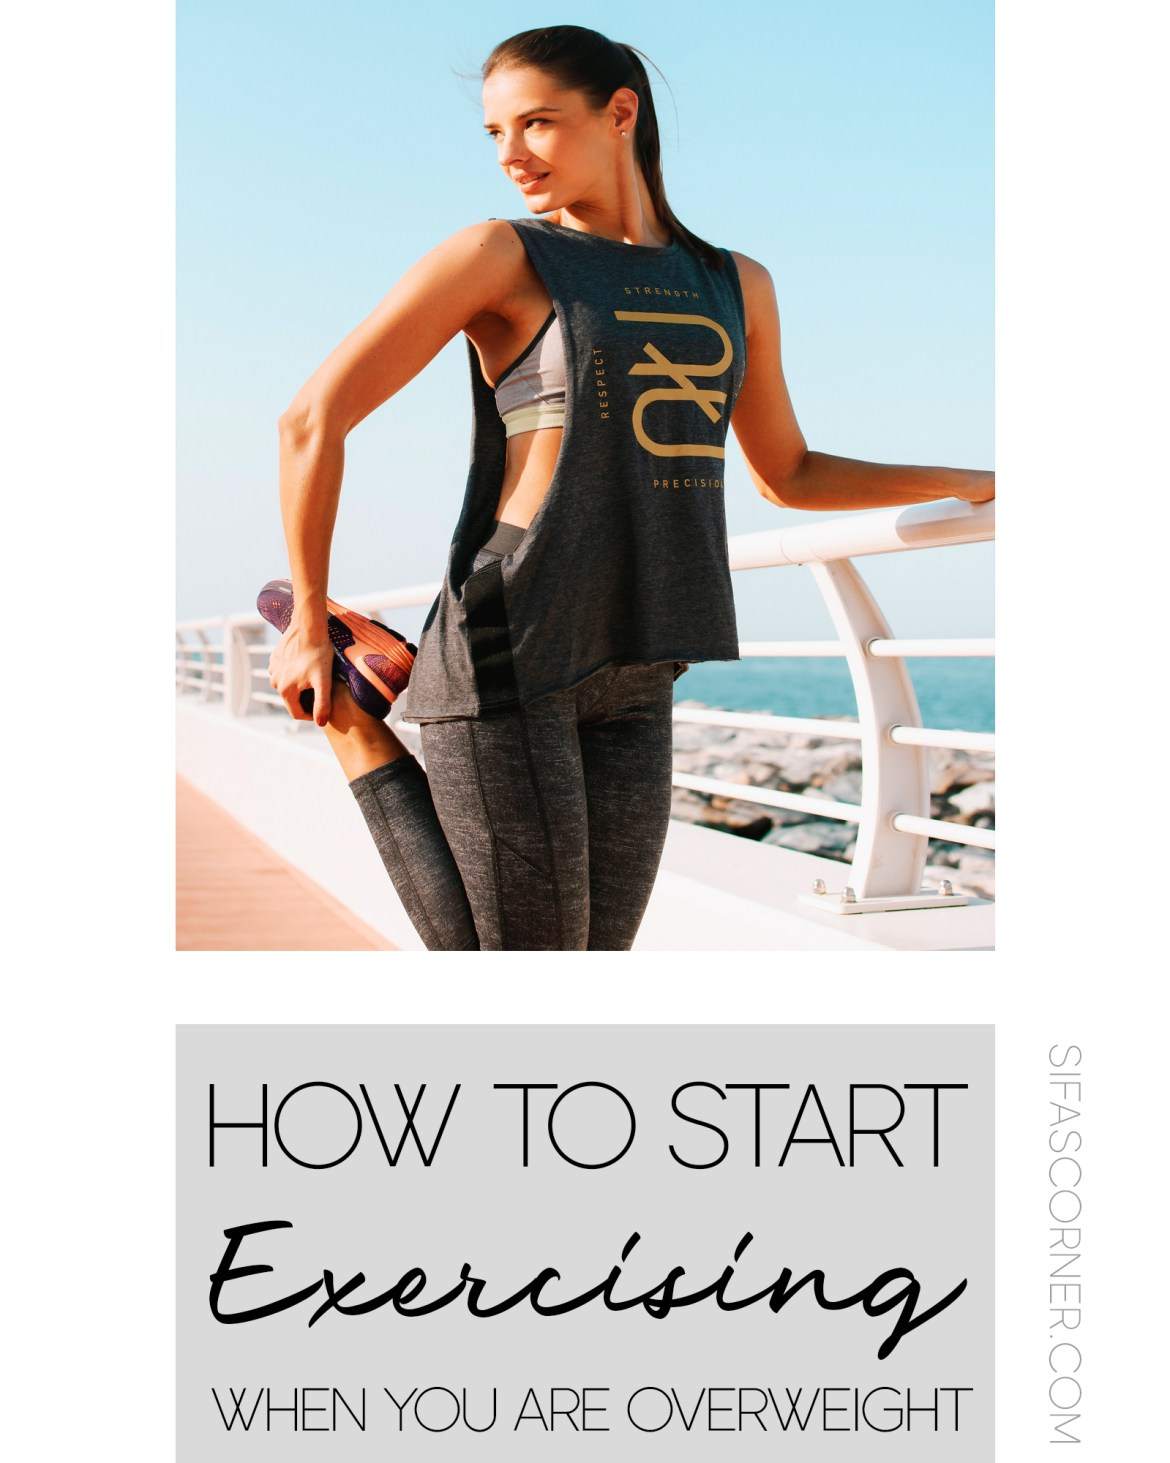 how to start exercising when you are overweight